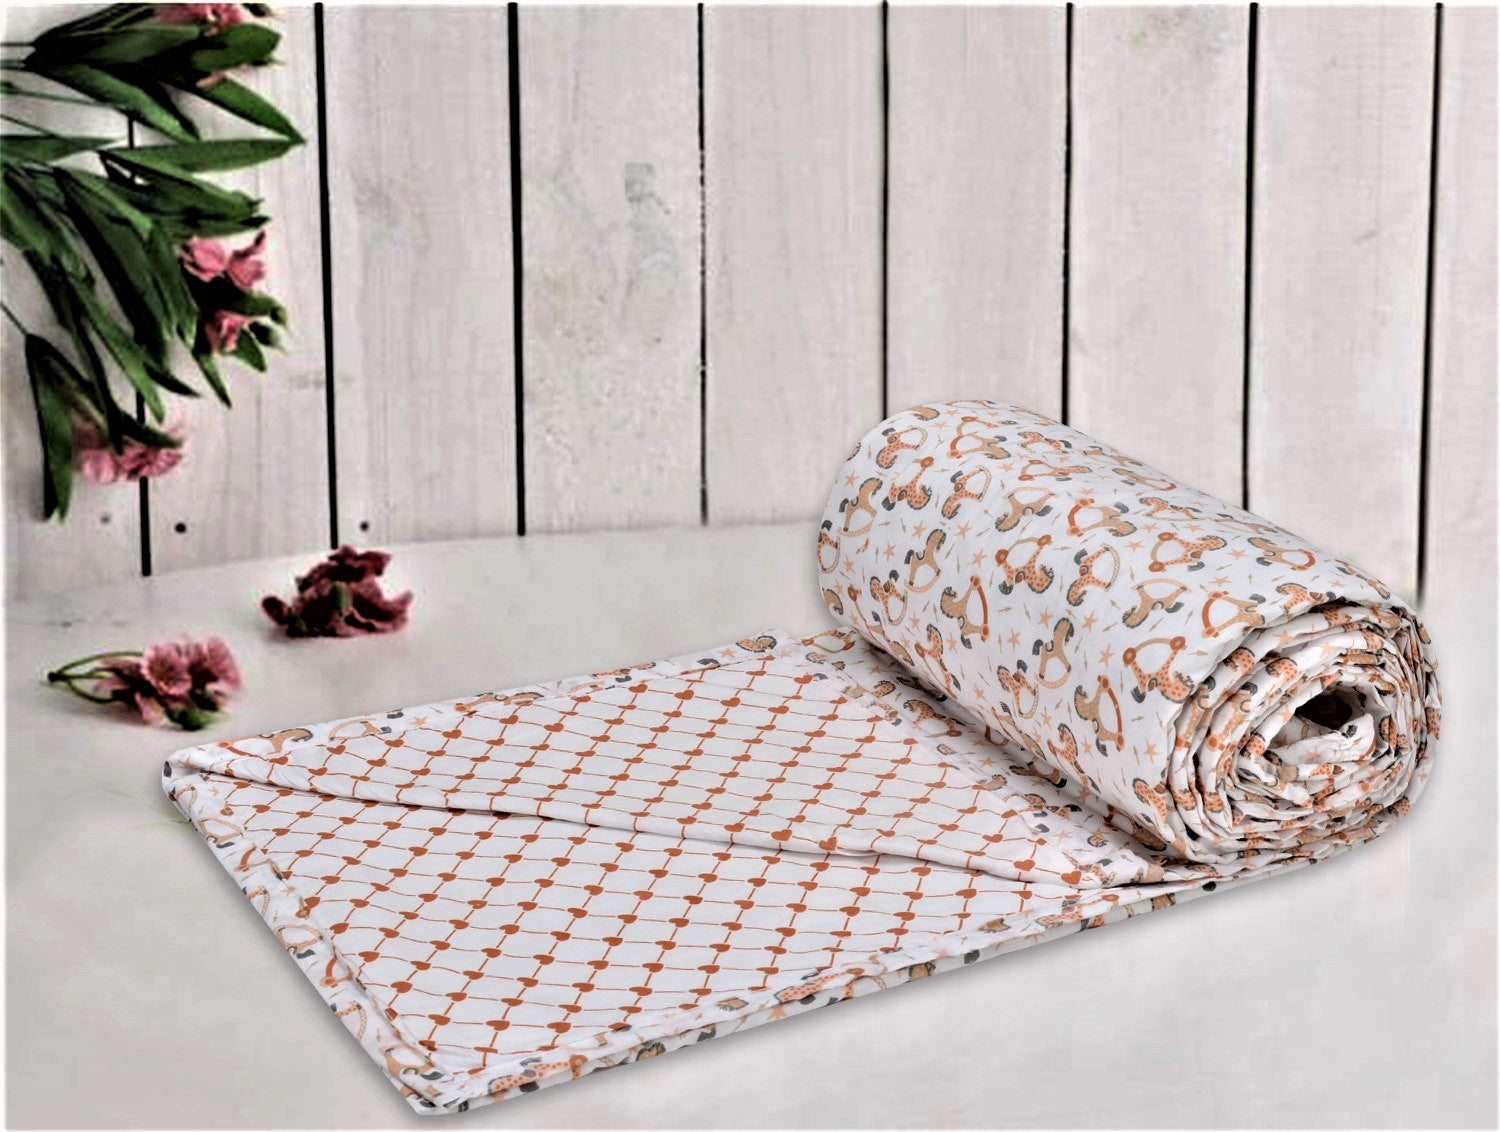 Trance Home Linen Cotton Double Dohar-HORSES Orange Yellow